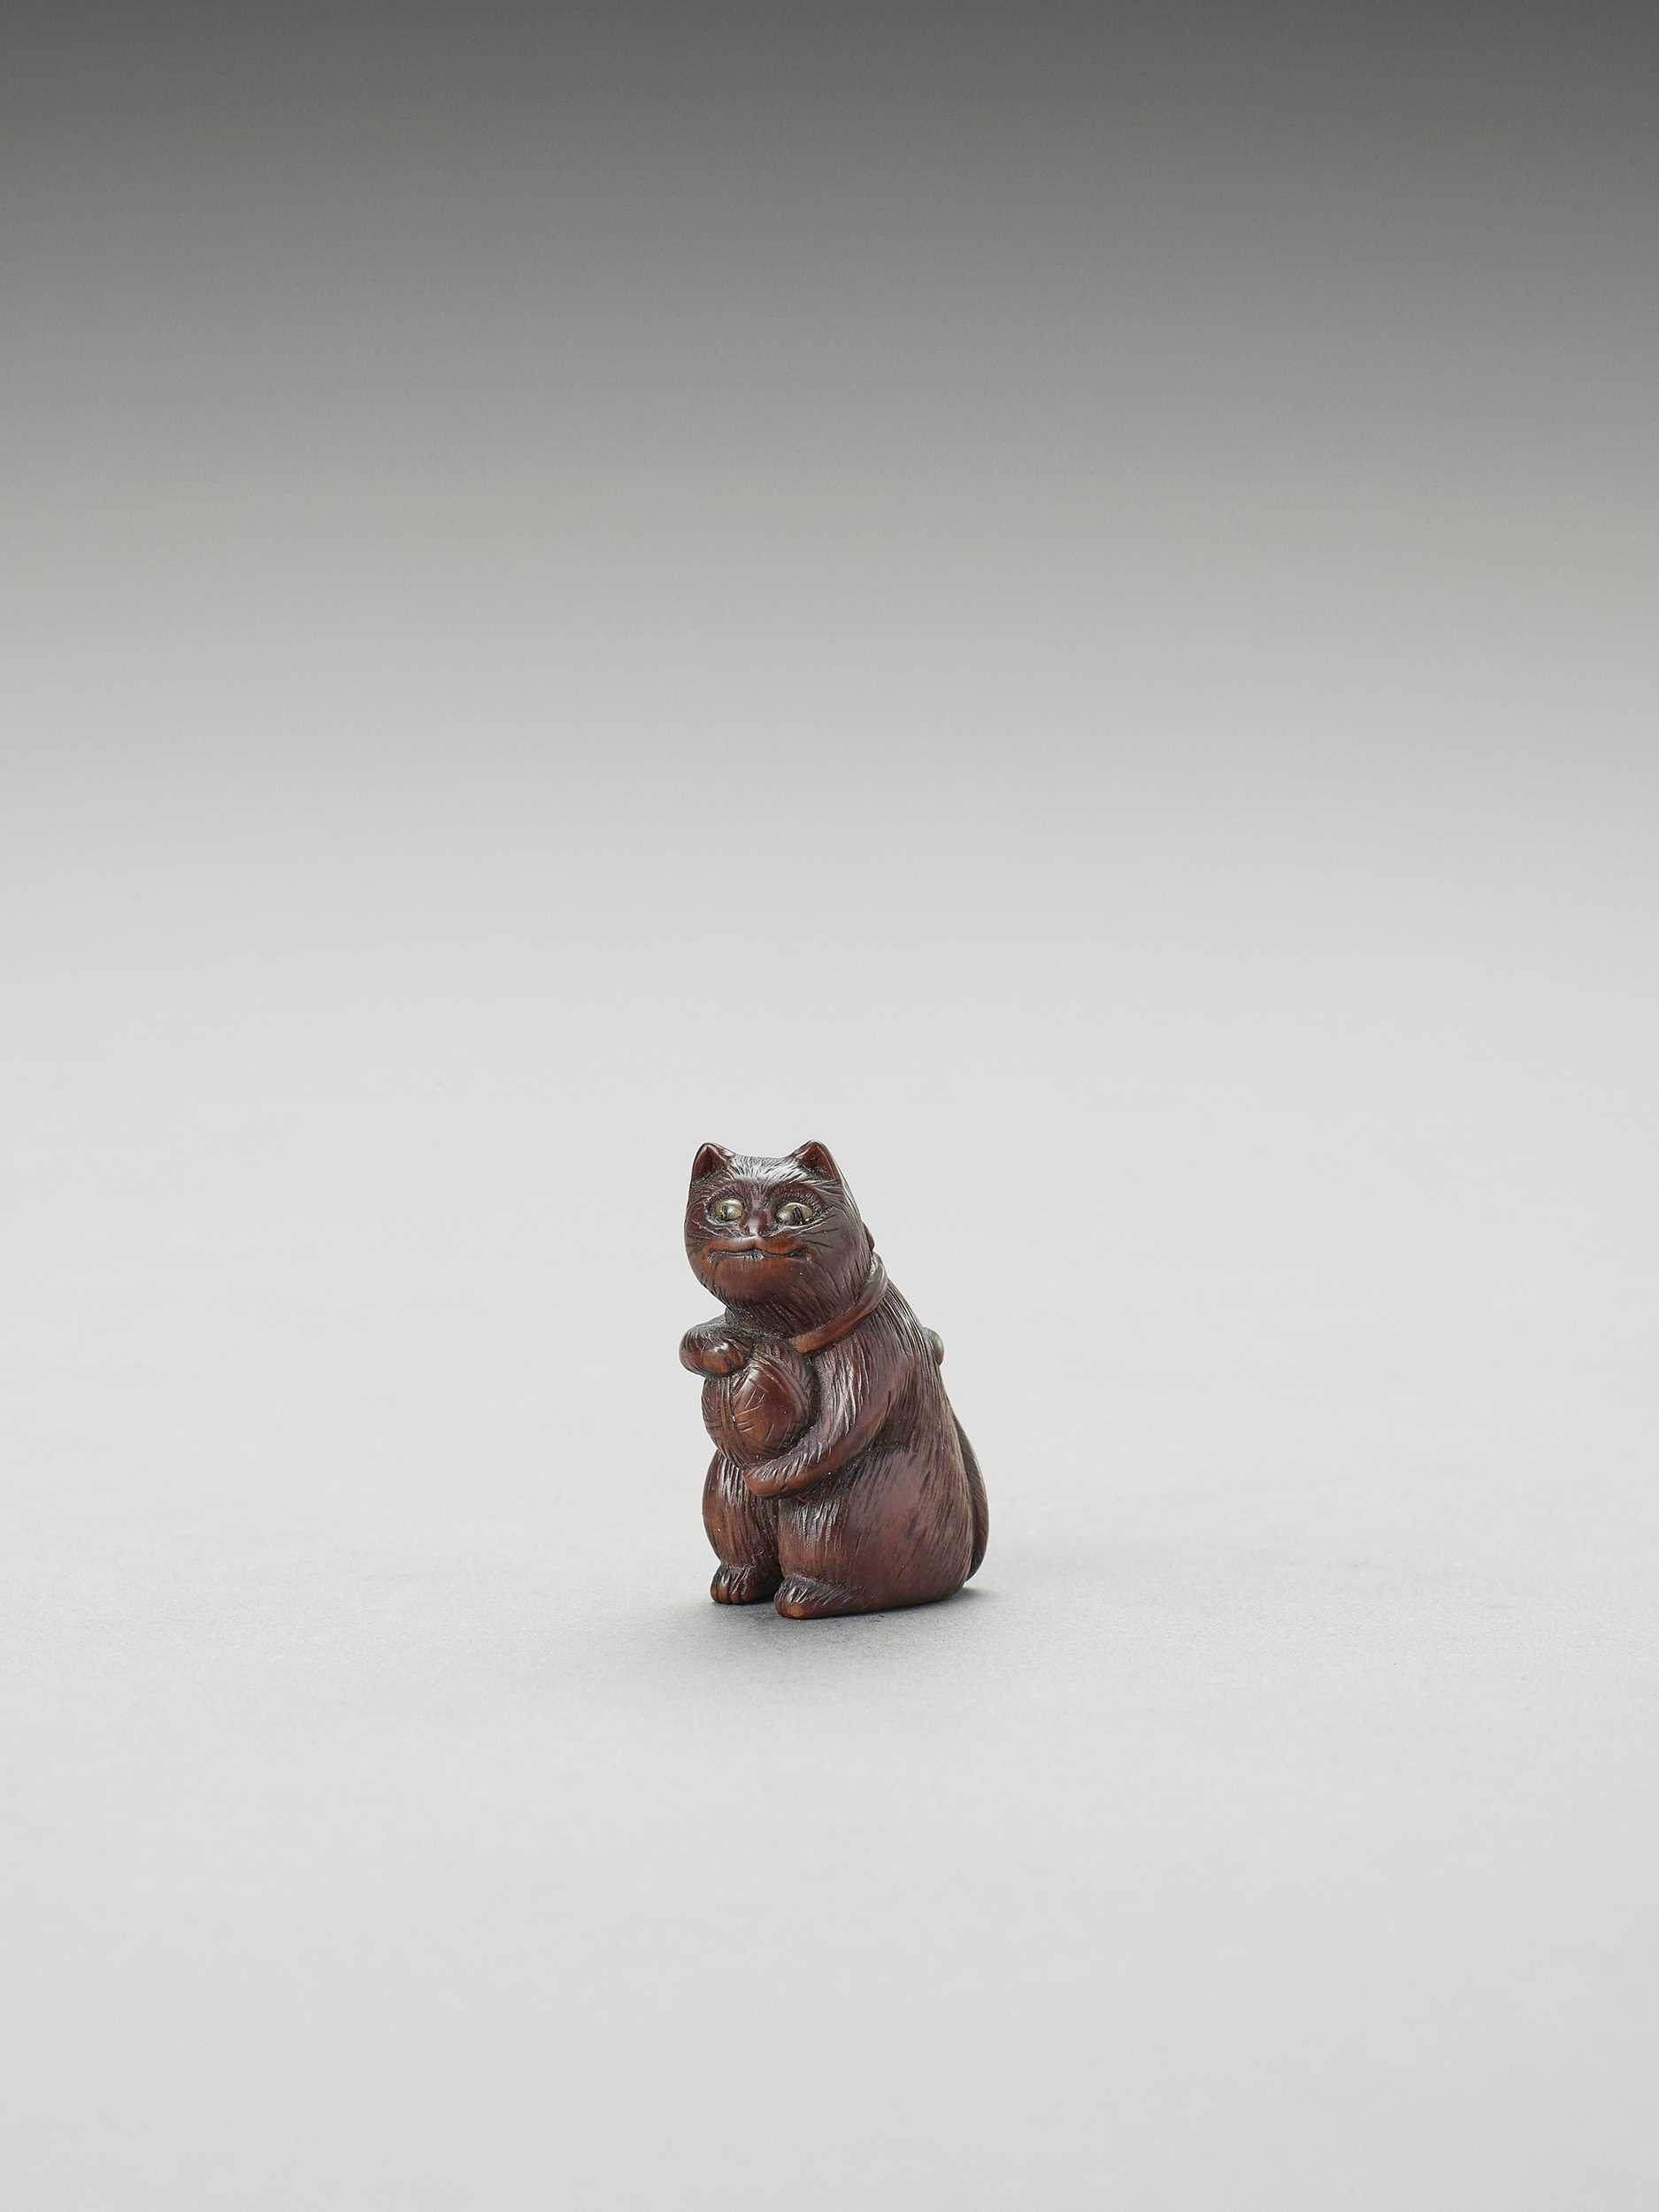 A CHARMING TOKYO SCHOOL WOOD NETSUKE OF A CAT WITH A BALL